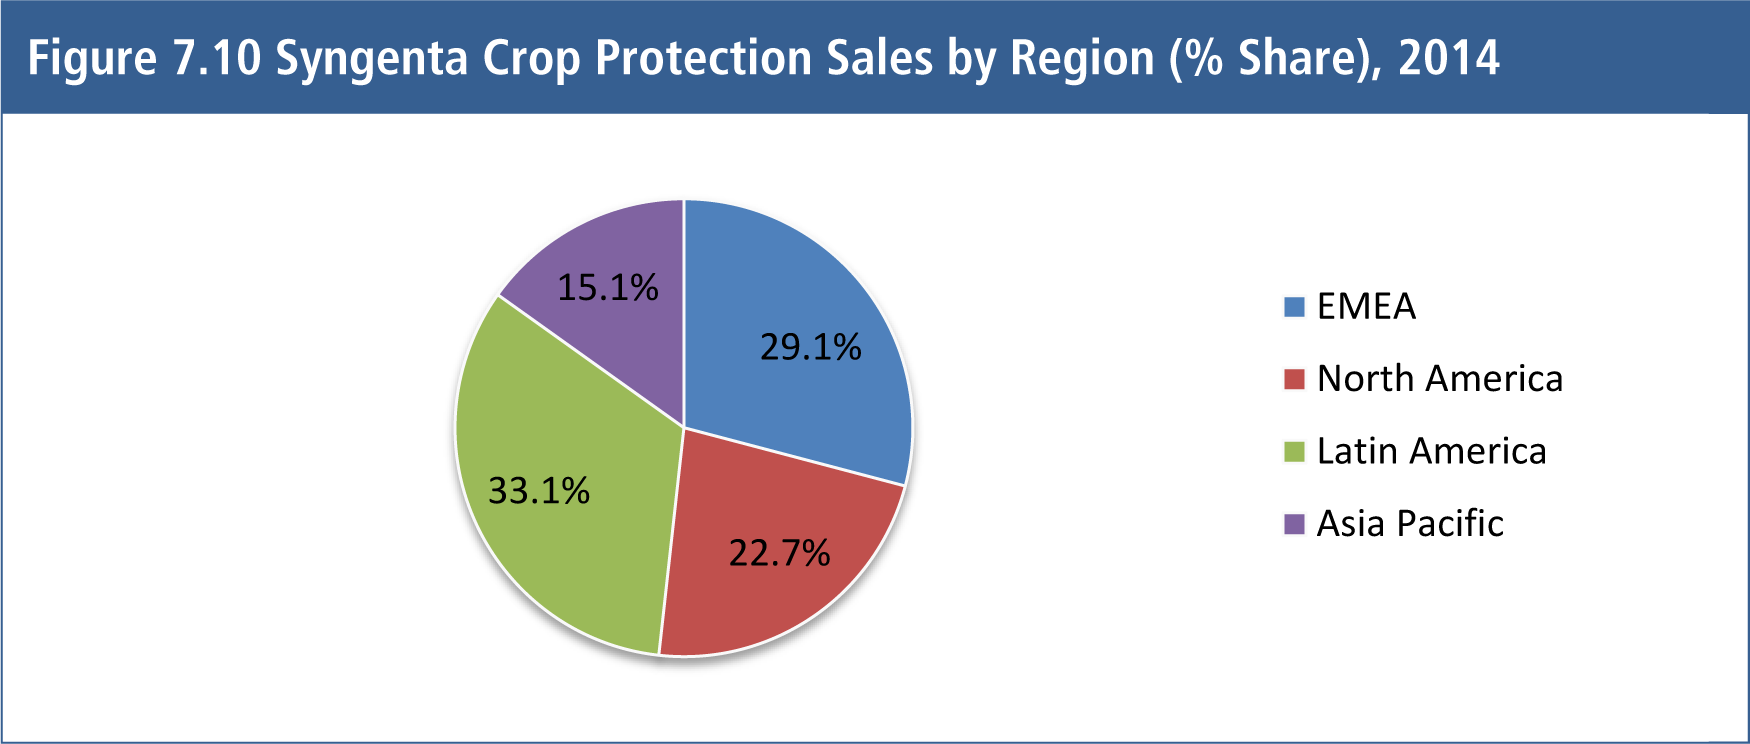 Crop Protection (Agrochemicals) Market Prospects 2015-2025 Herbicides, Fungicides, Insecticides, Bio-Pesticides and Adjuvants